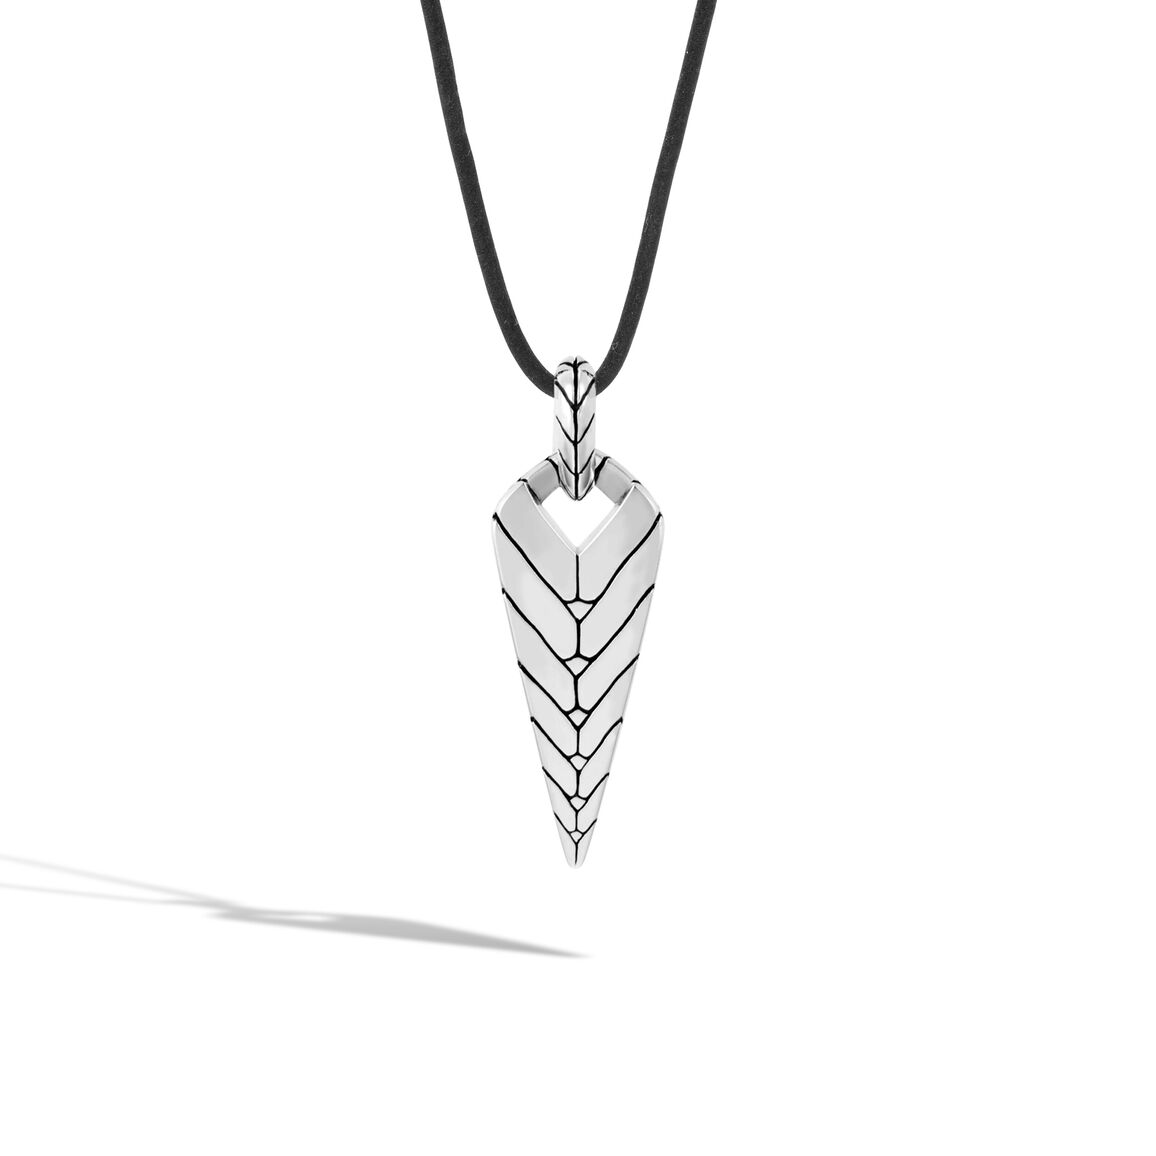 Modern Chain Pendant Necklace in Silver and Leather